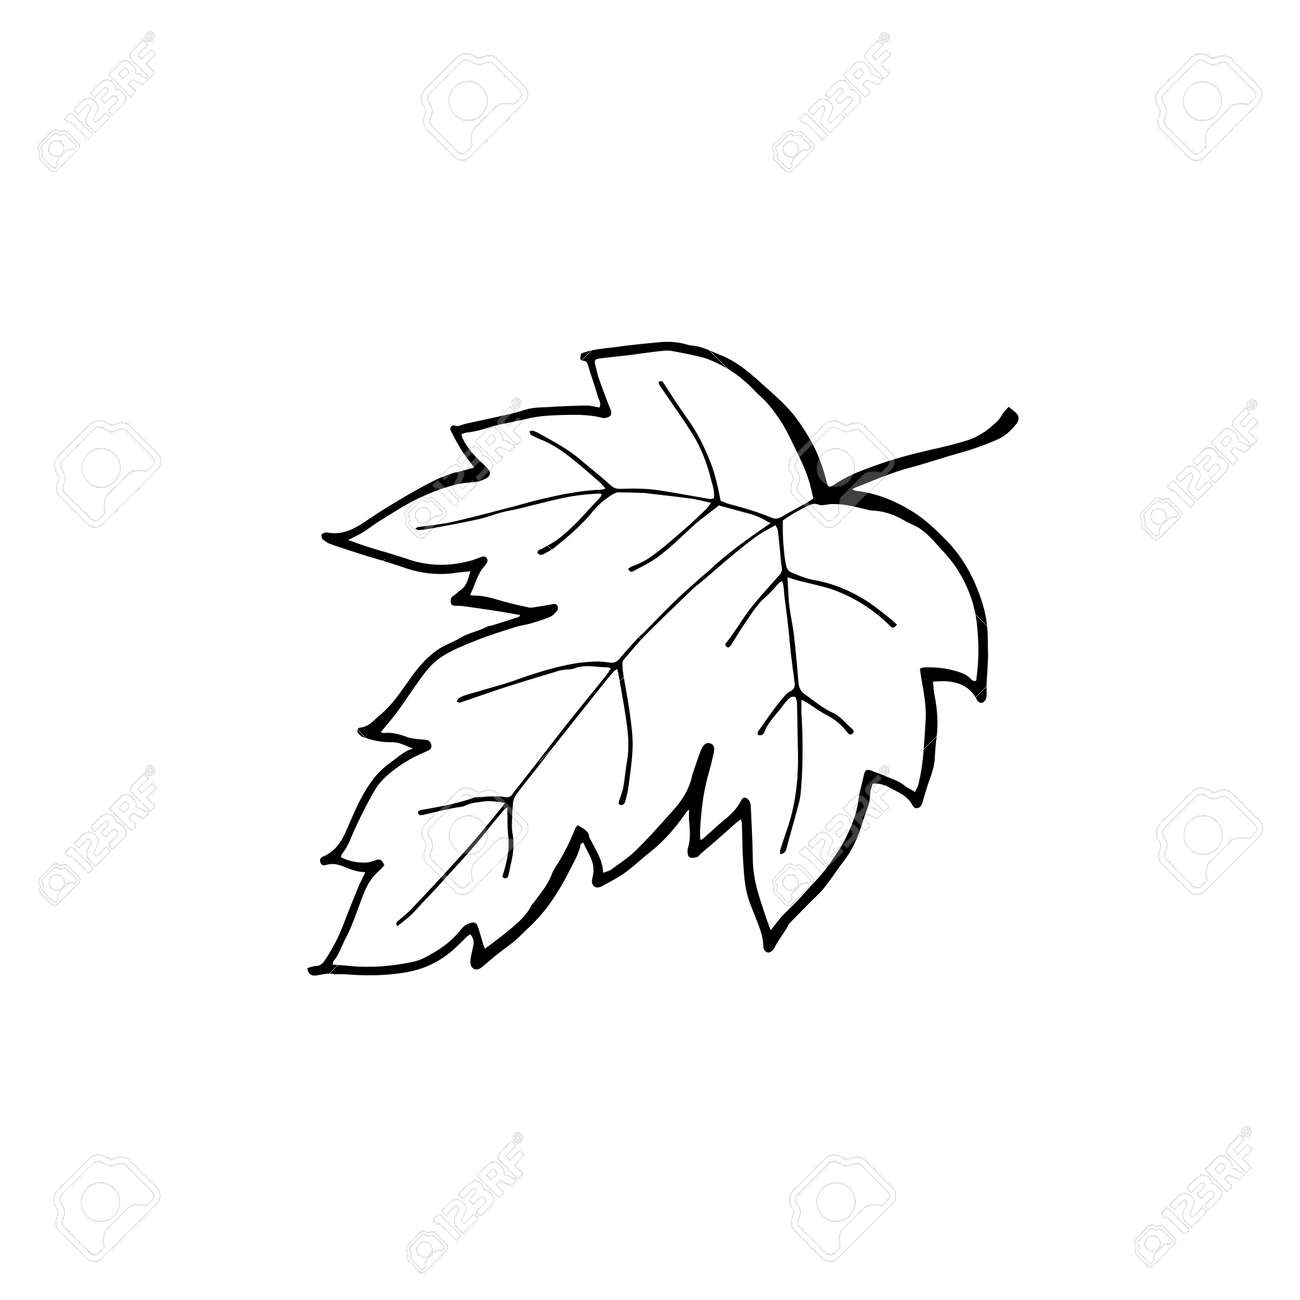 Hand Drawn Maple Leaf Outline Maple Leaf In Line Art Style Isolated